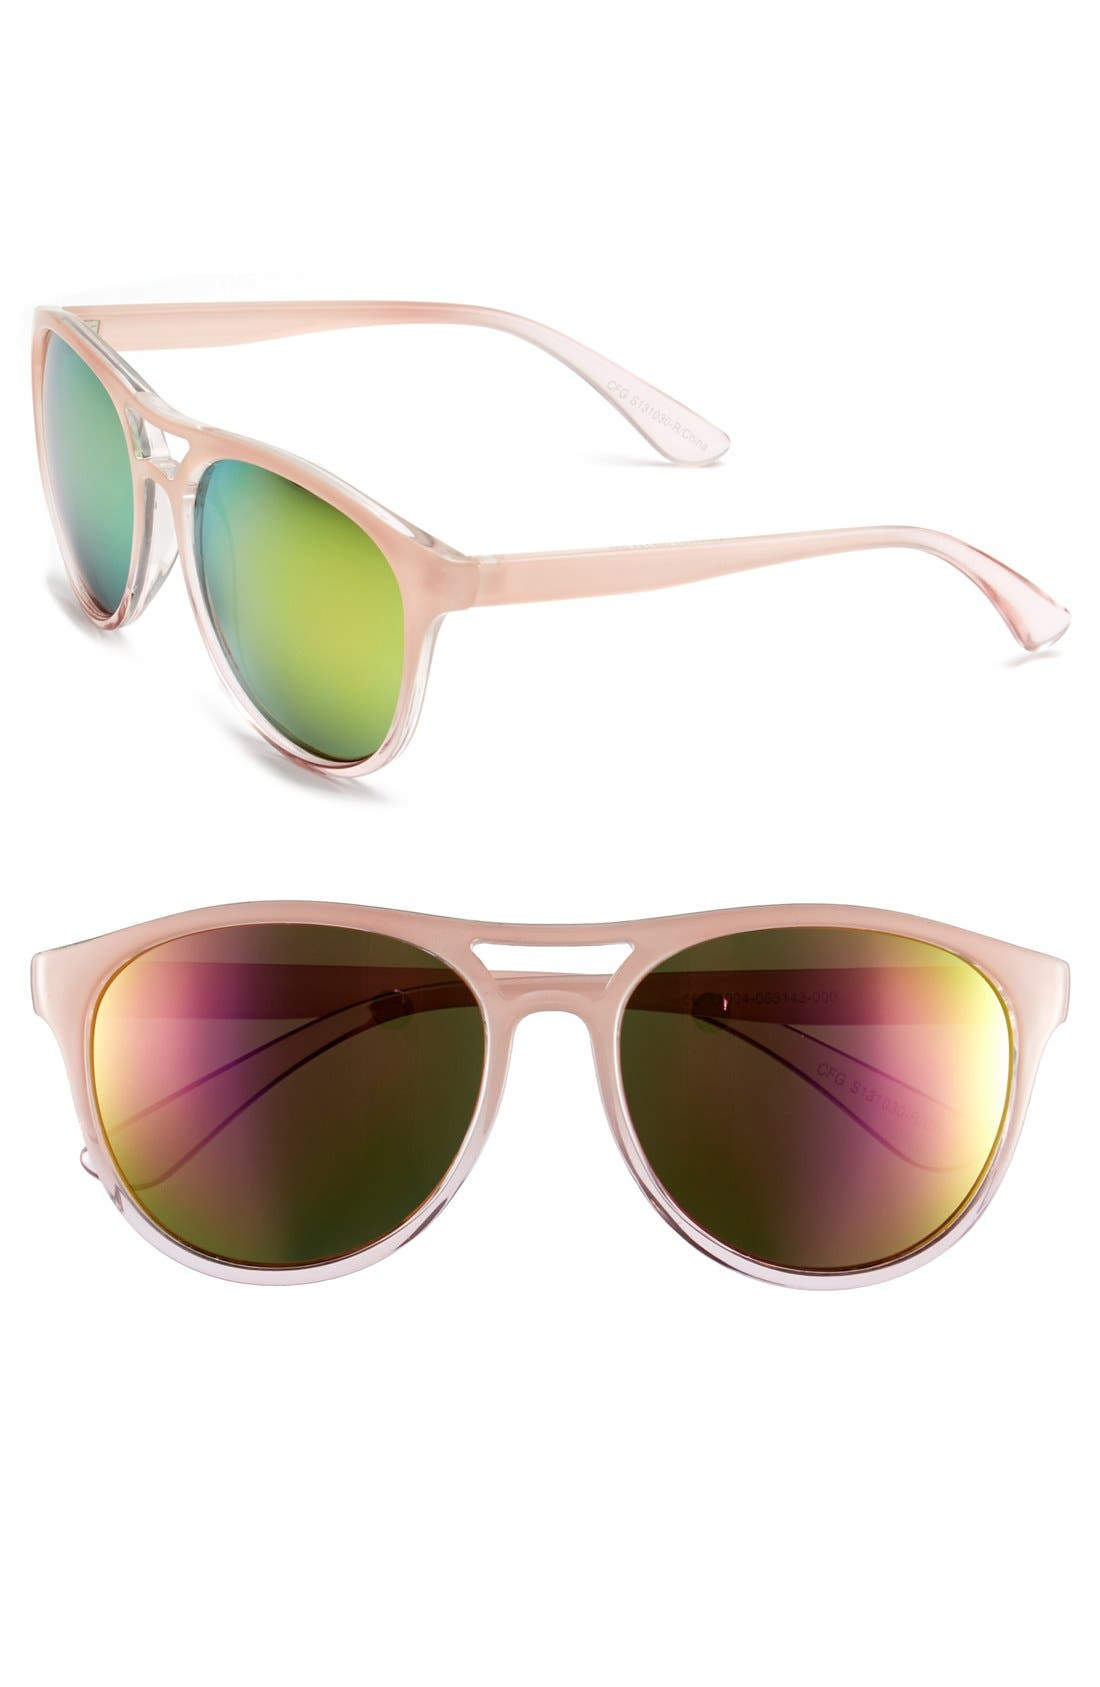 Alternate Image 1 Selected - BP. 55mm Oversize Retro Sunglasses (Juniors)